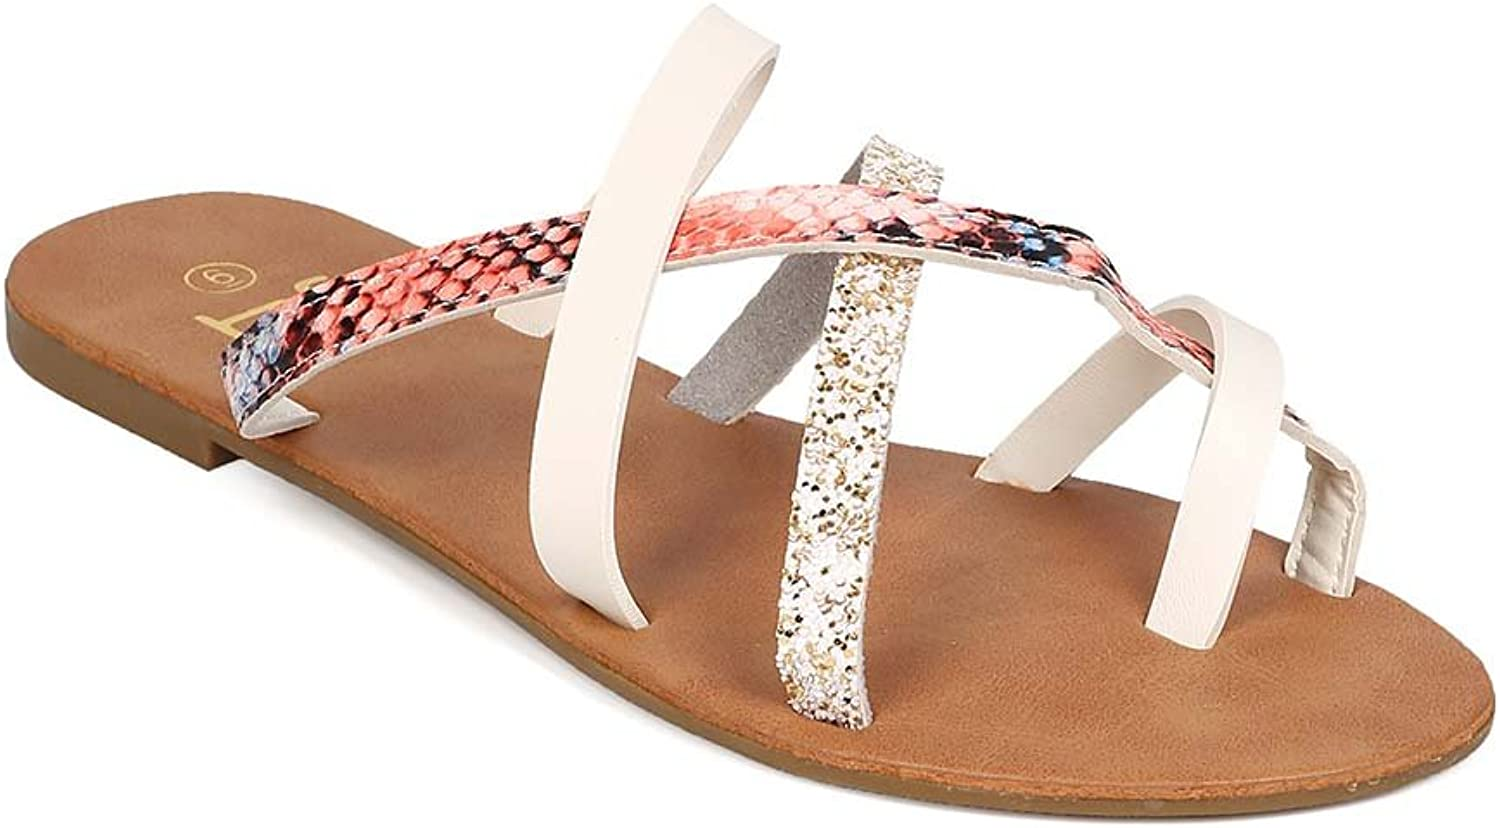 BETANI Women Mixed Media Cross Strap Slip On Flat Sandal EH50 - White